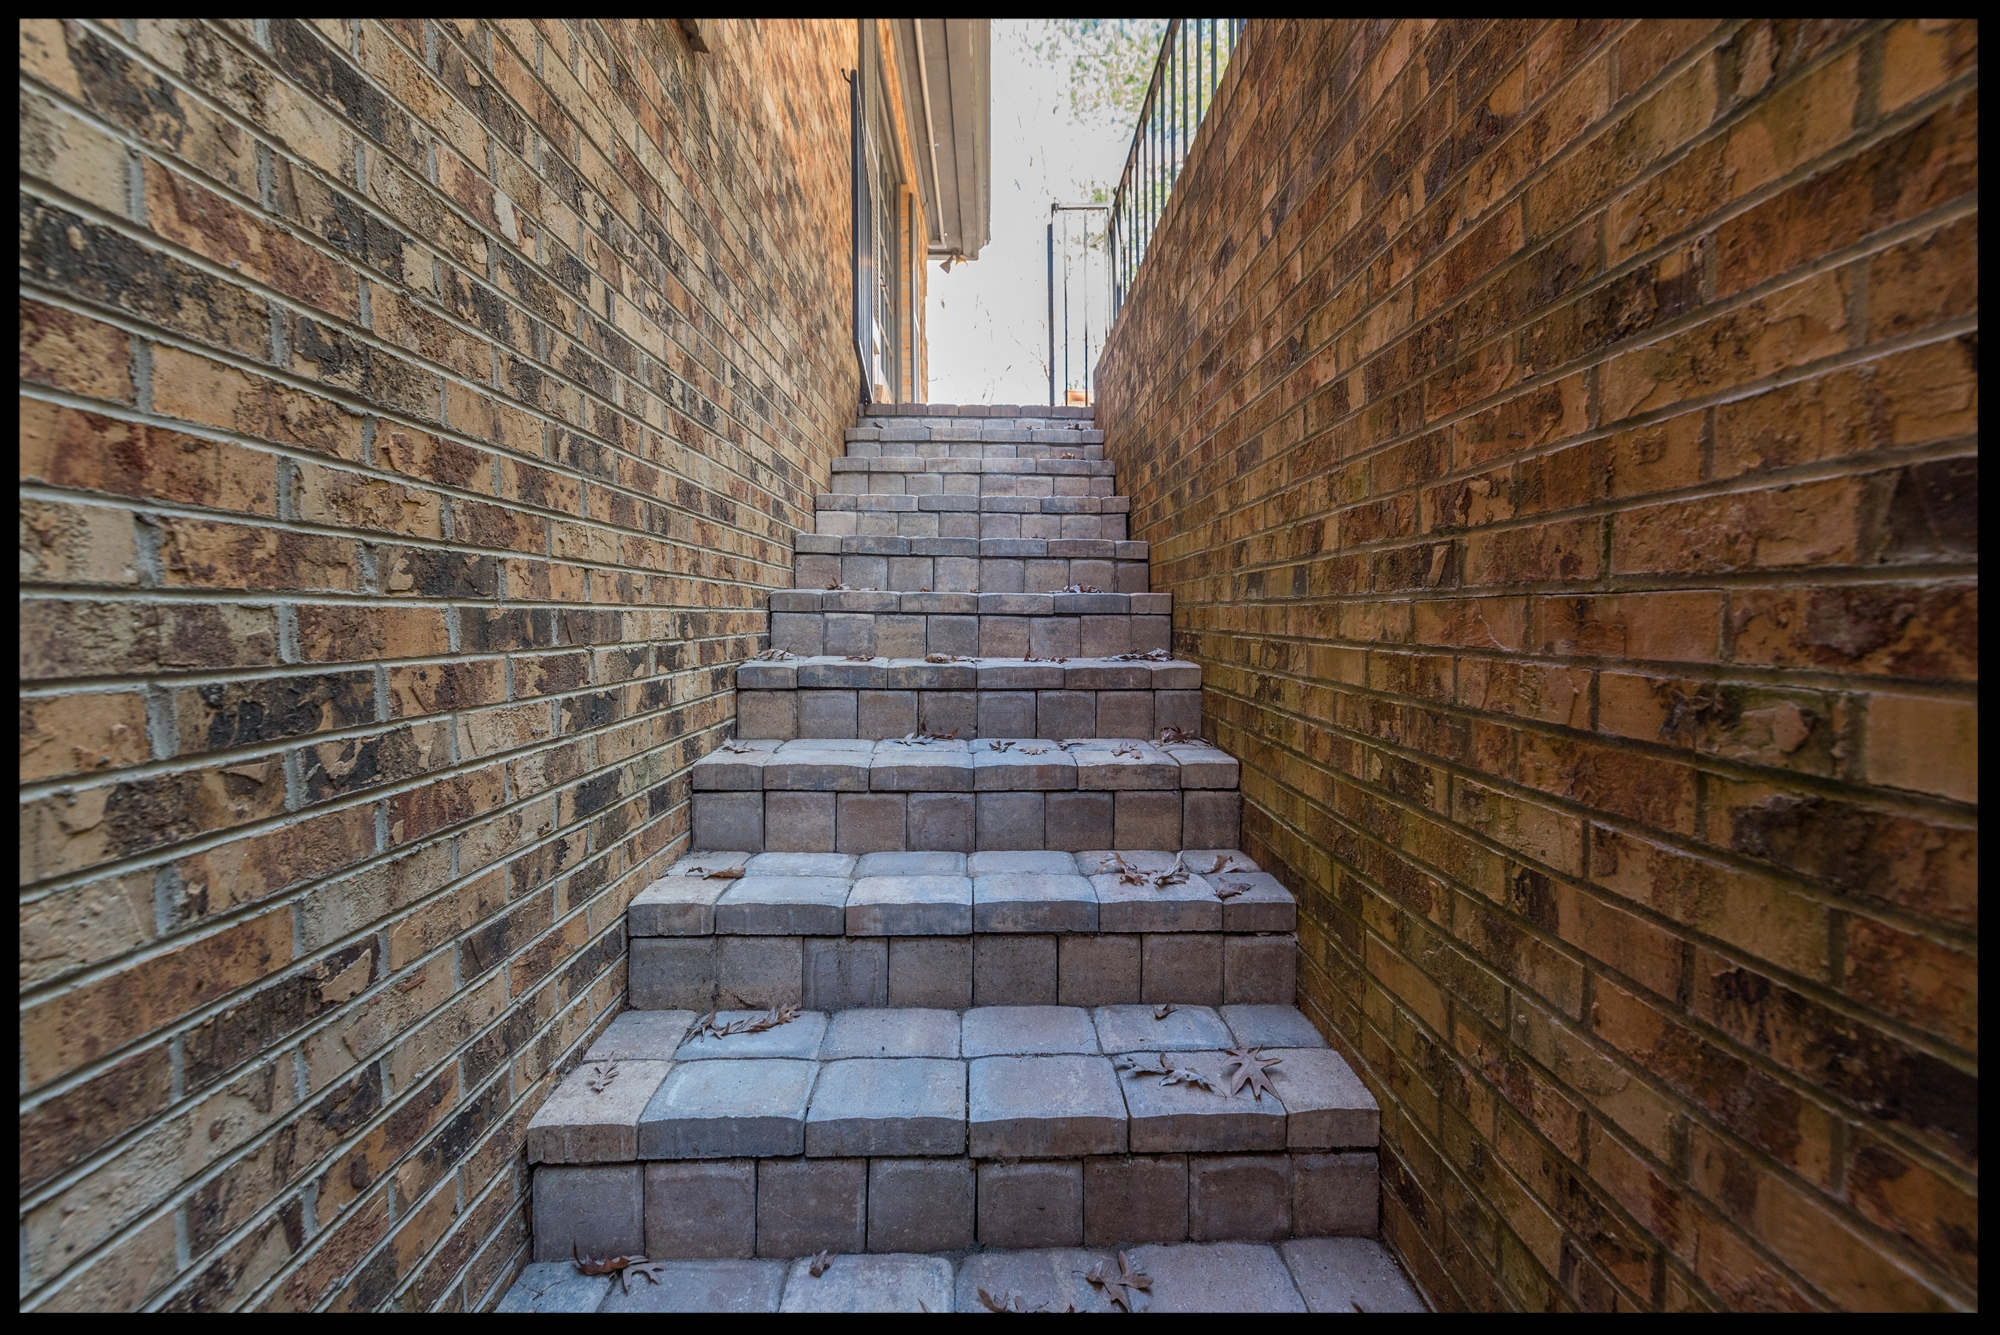 HARDSCAPING - The Yardfathers specialize in intricate, beautiful, handcrafted hardscaping designs that will transform your living spaces into showpieces.